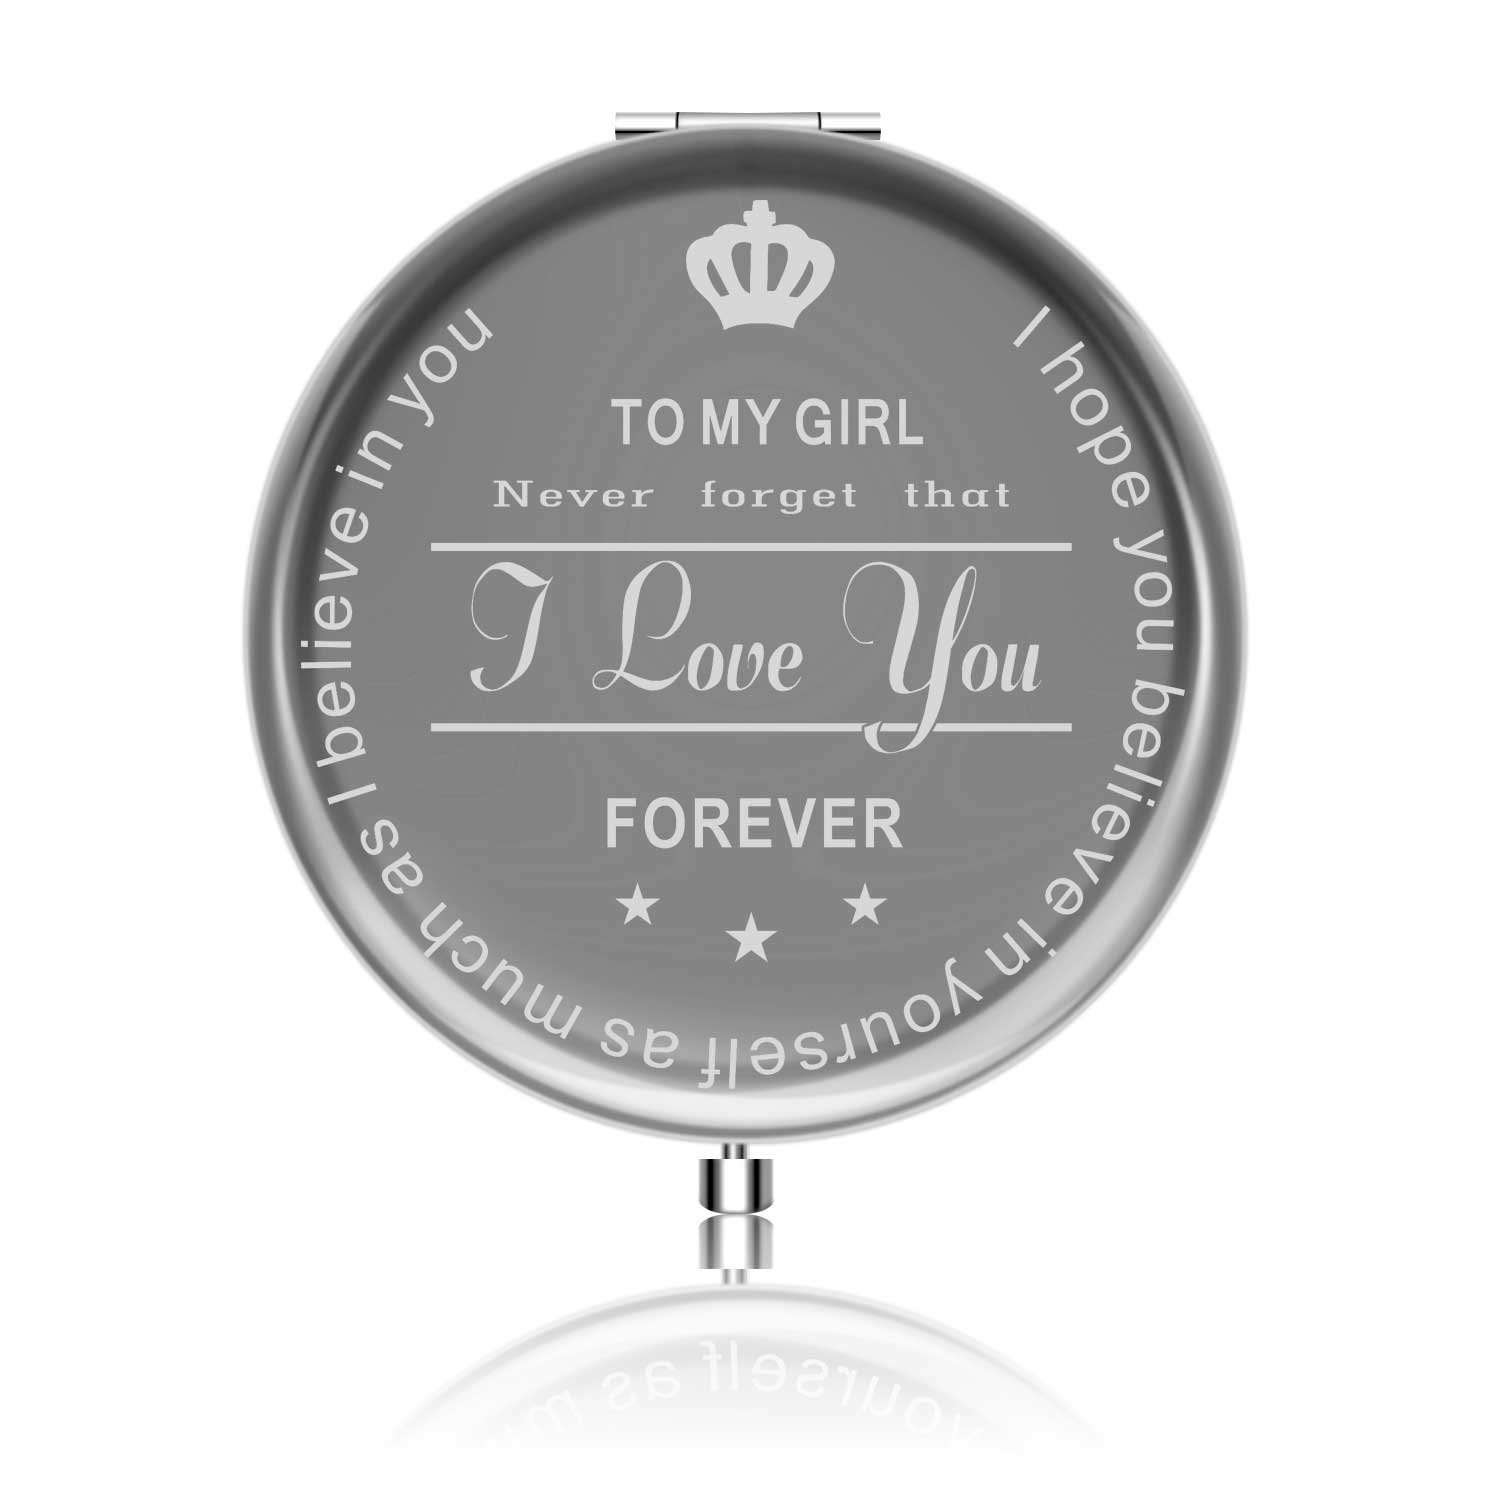 Personalized Girlfriend Gifts for Valentines Day Ideals Birthday Gift from boyfriend Engraved Anniversaries Gift to Girl from Family or Friend with Gift Box I love you forever